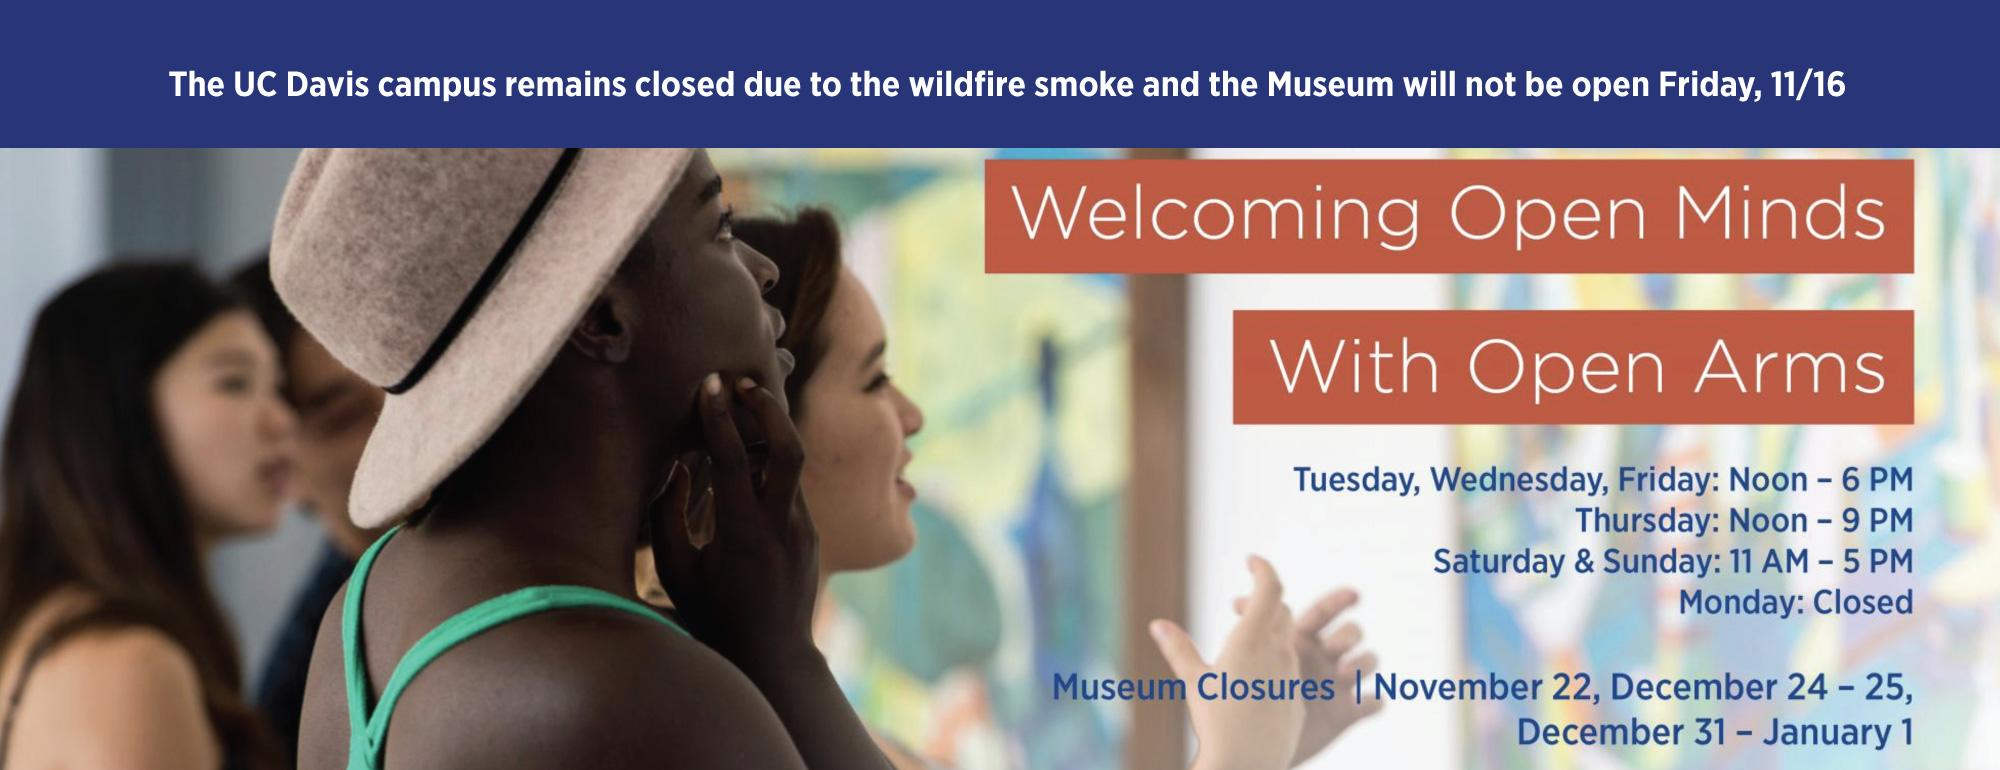 The UC Davis campus remains closed due to the wildfire smoke and the Museum will not be open Friday, 11/16